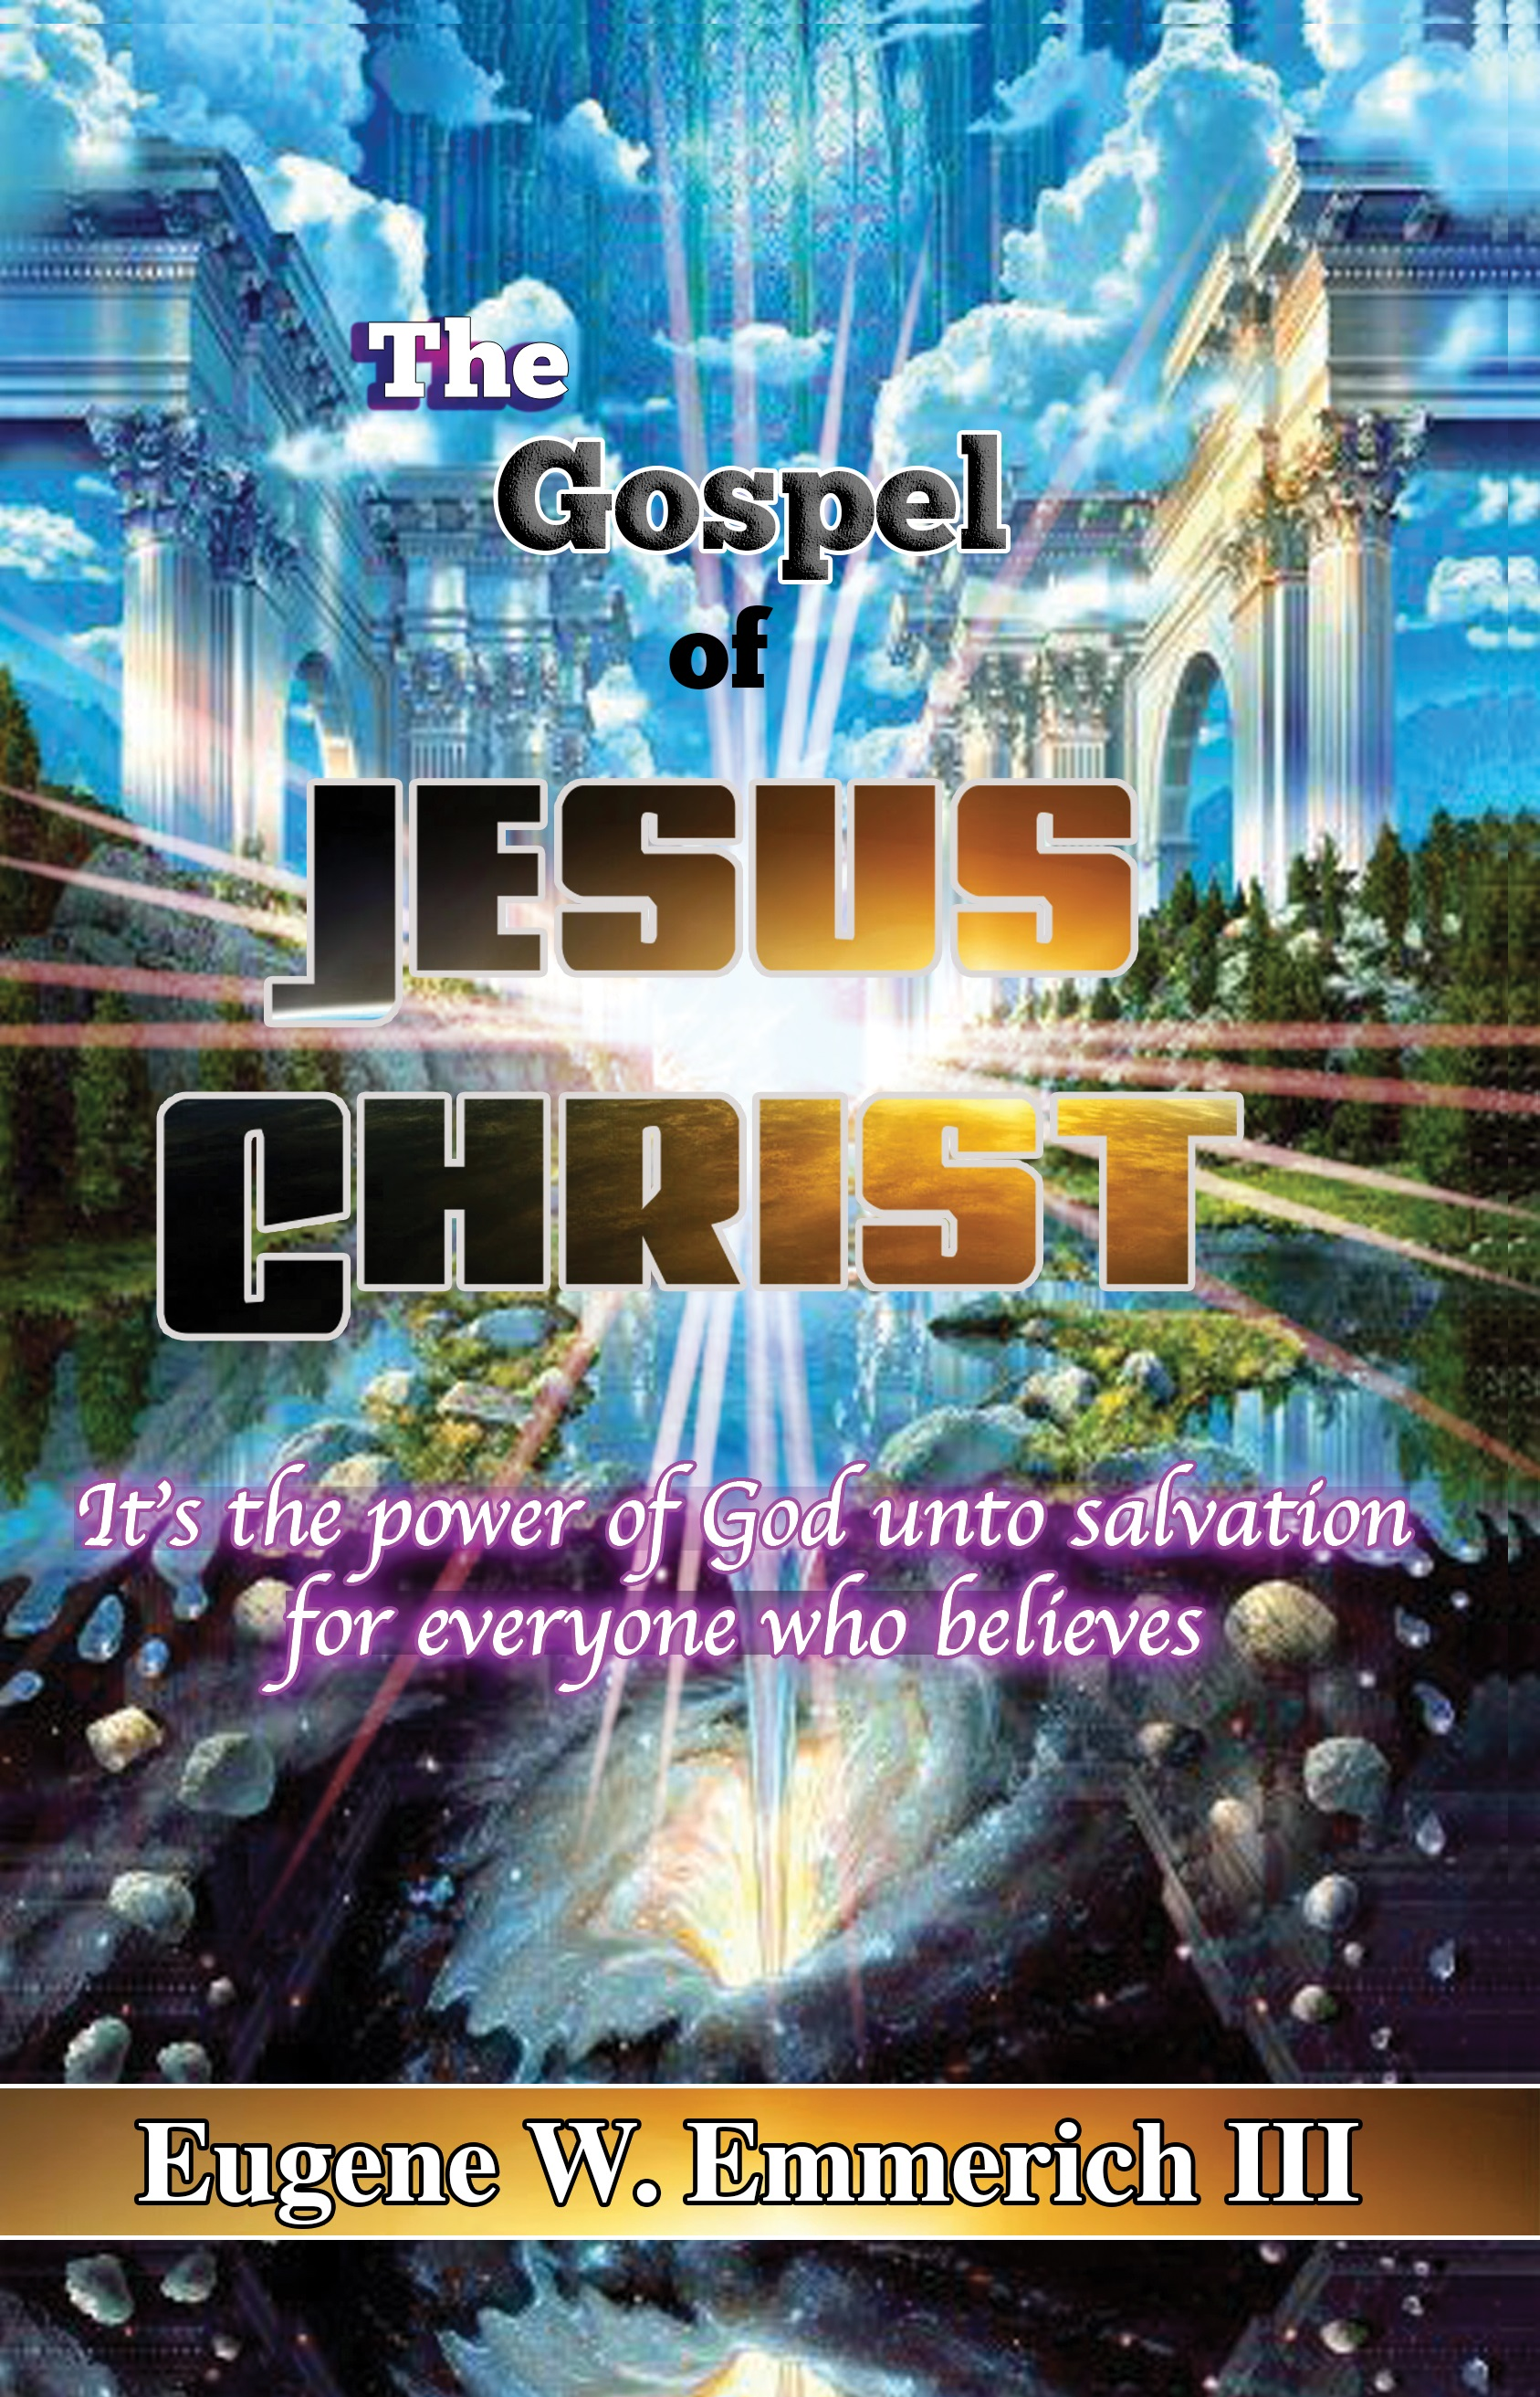 The Gospel of Jesus Christ